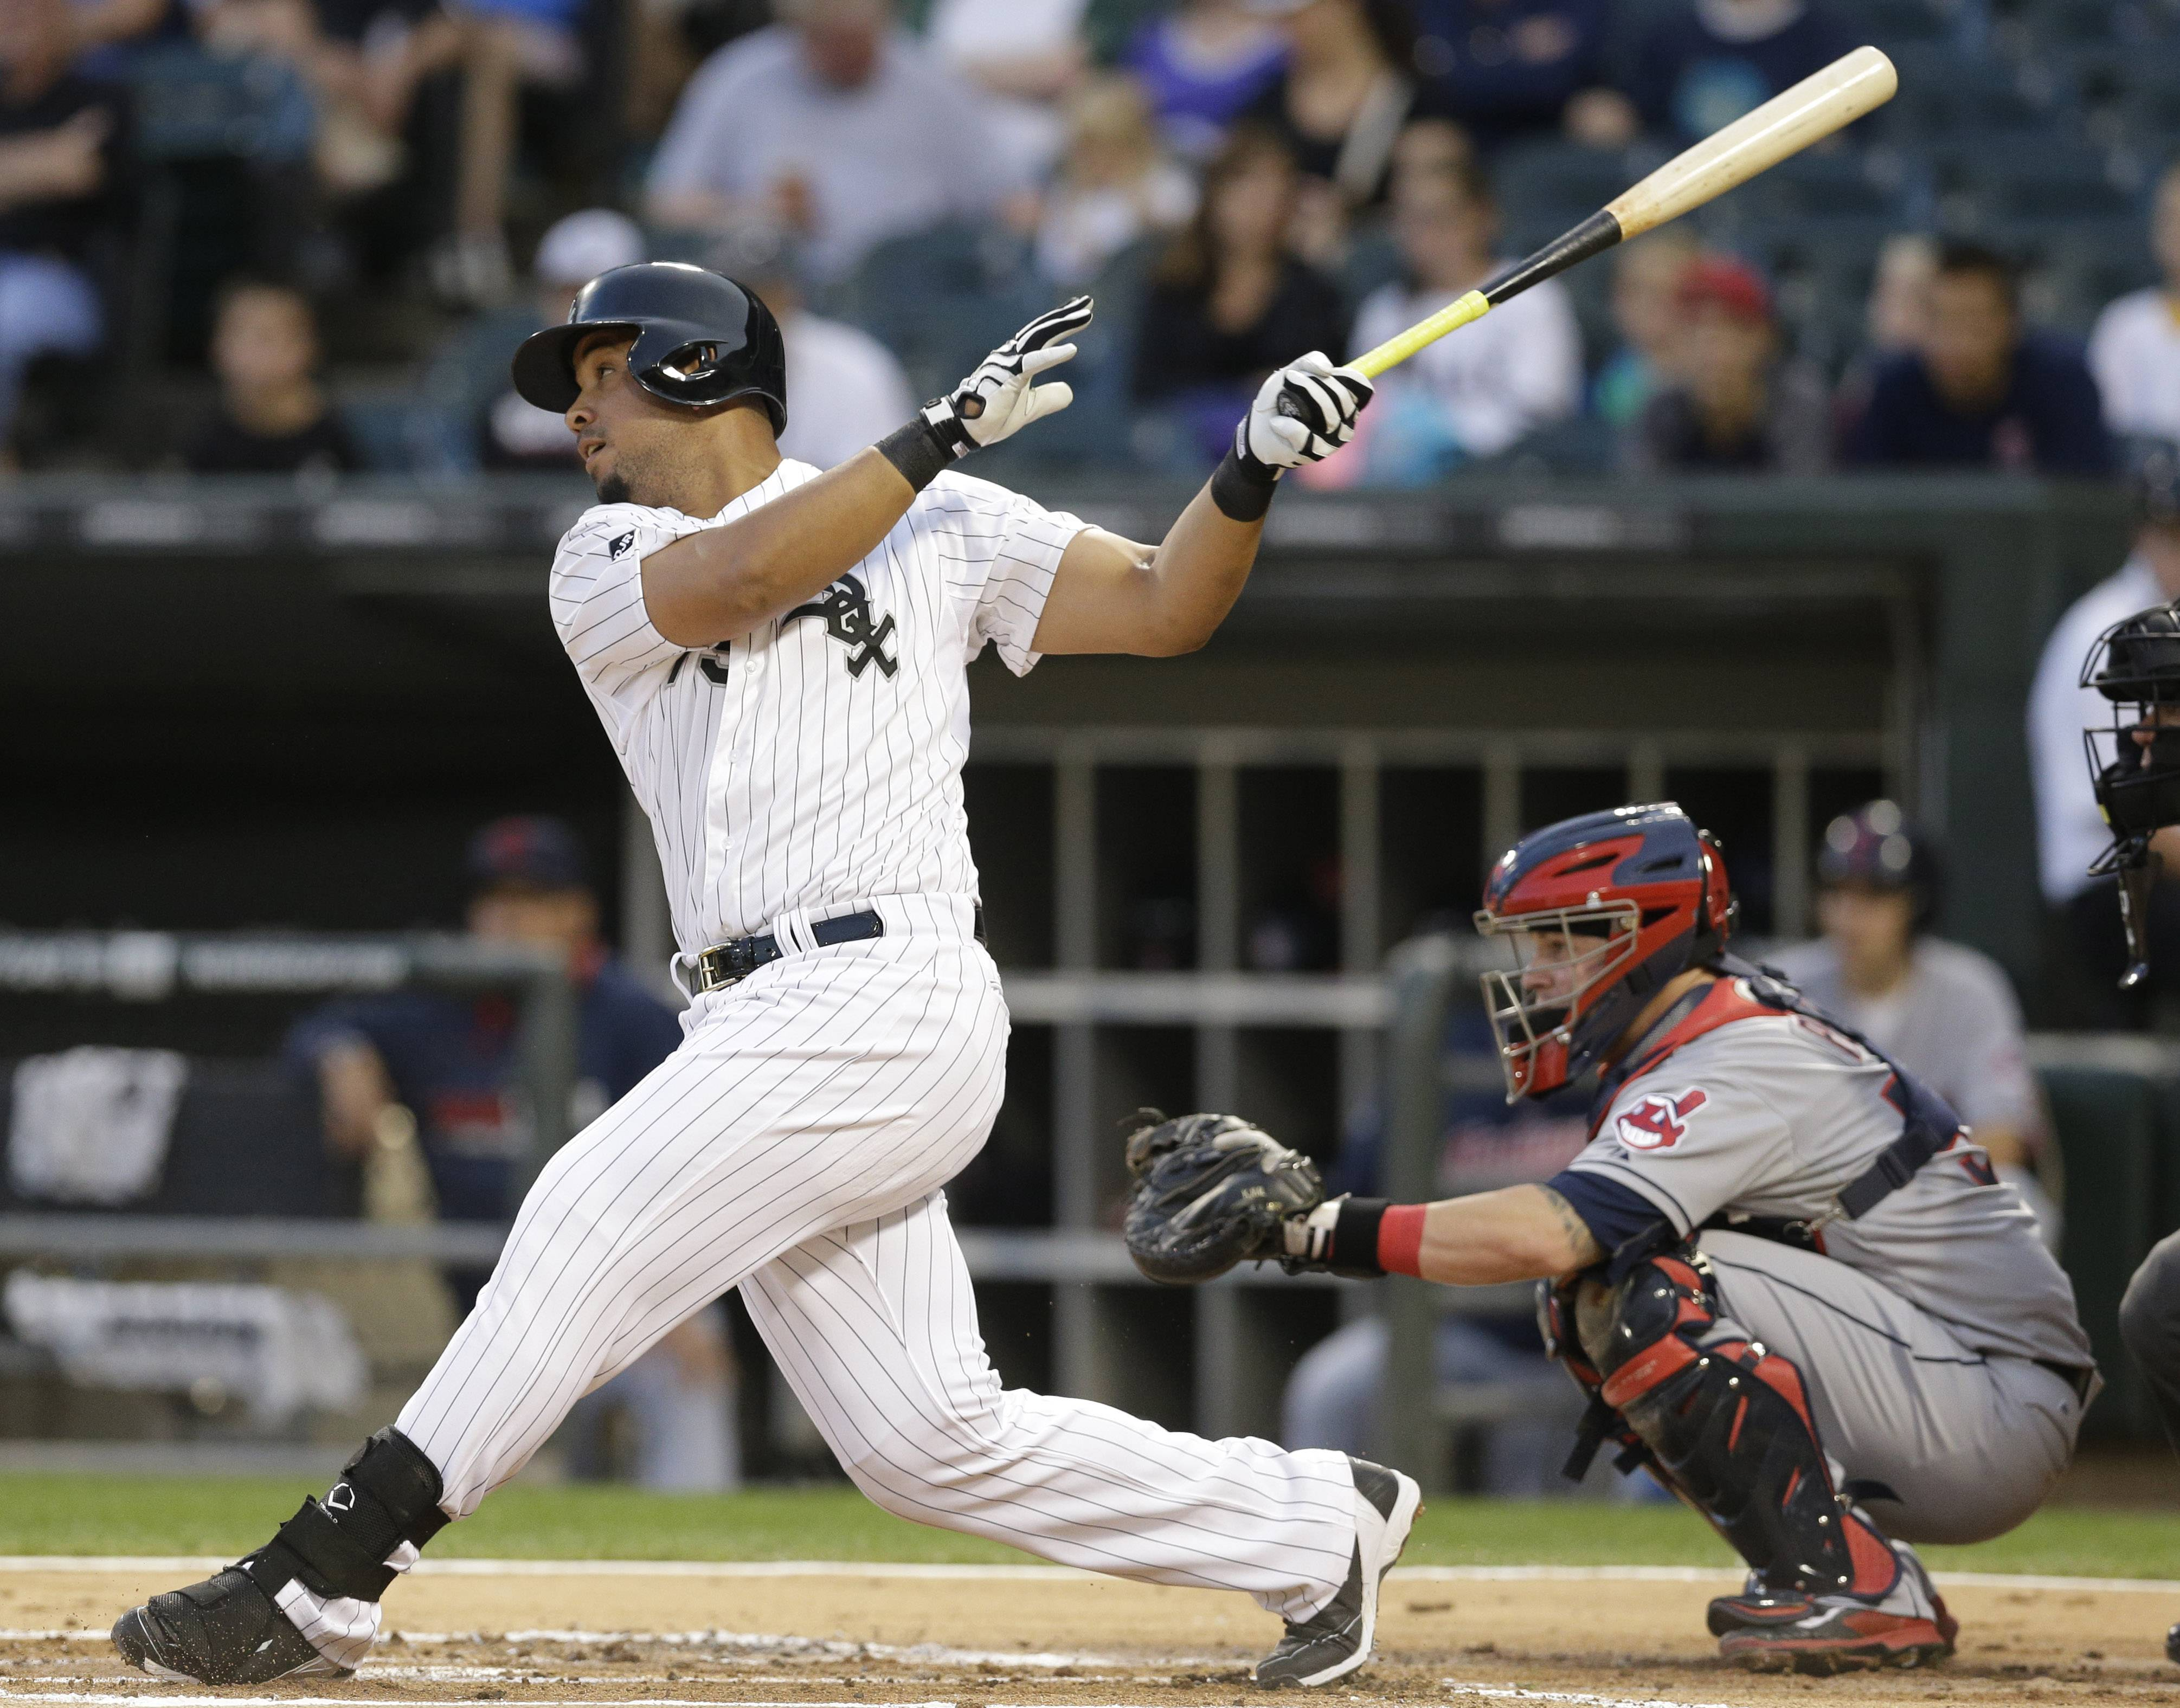 The White Sox's Jose Abreu had three hits and 2 RBIs in the Sox win over Cleveland Wednesday night at U.S. Cellular Field.